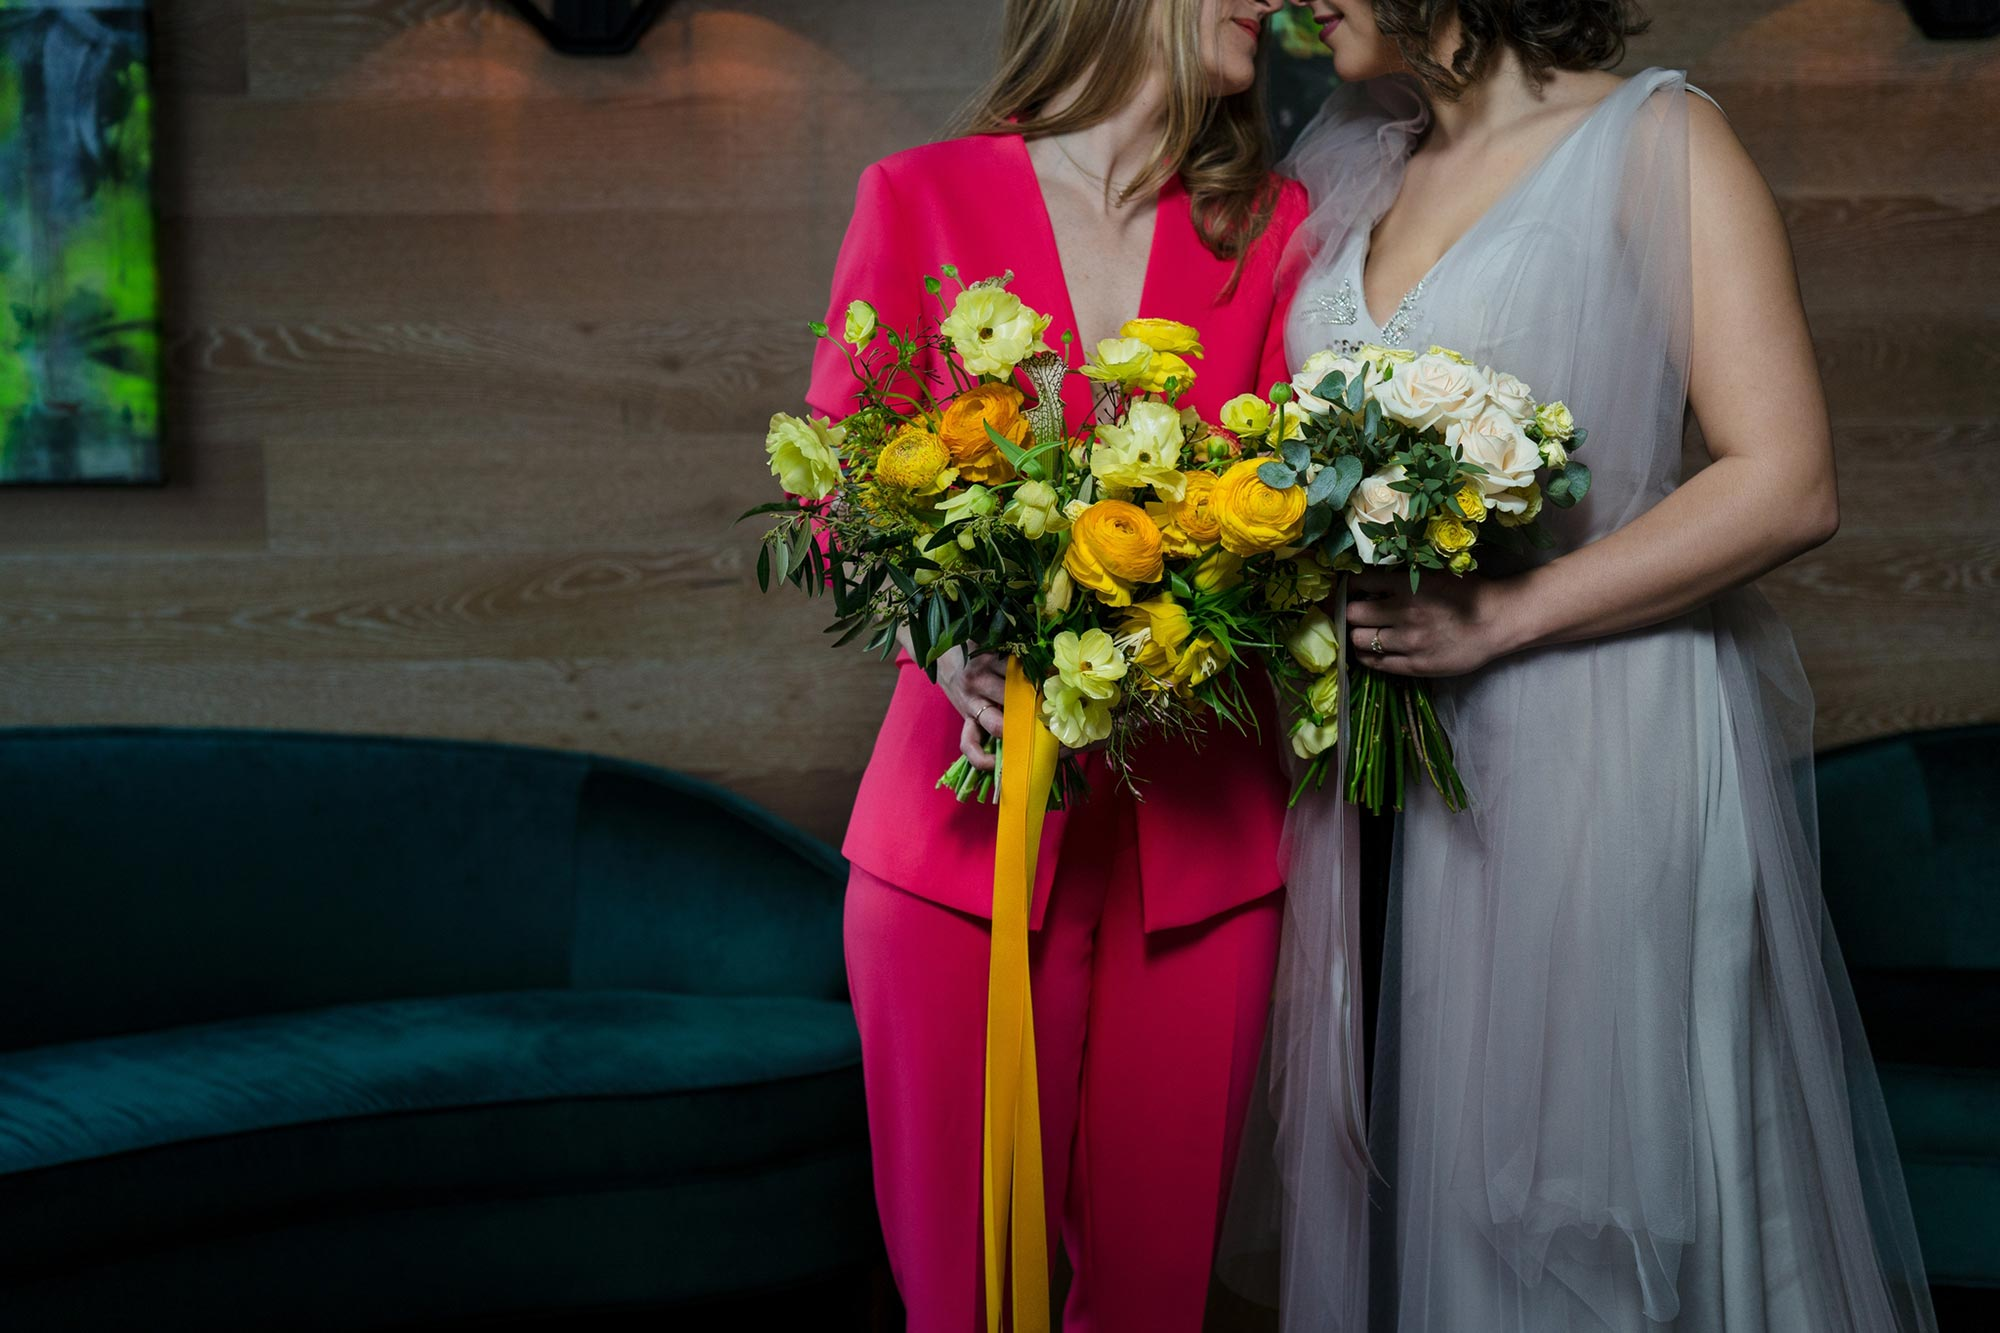 Bright Neon Wedding Inspiration at The Bowery Hotel NYC showing gray dress neon pink suit and bouquet JC Lemon Photography